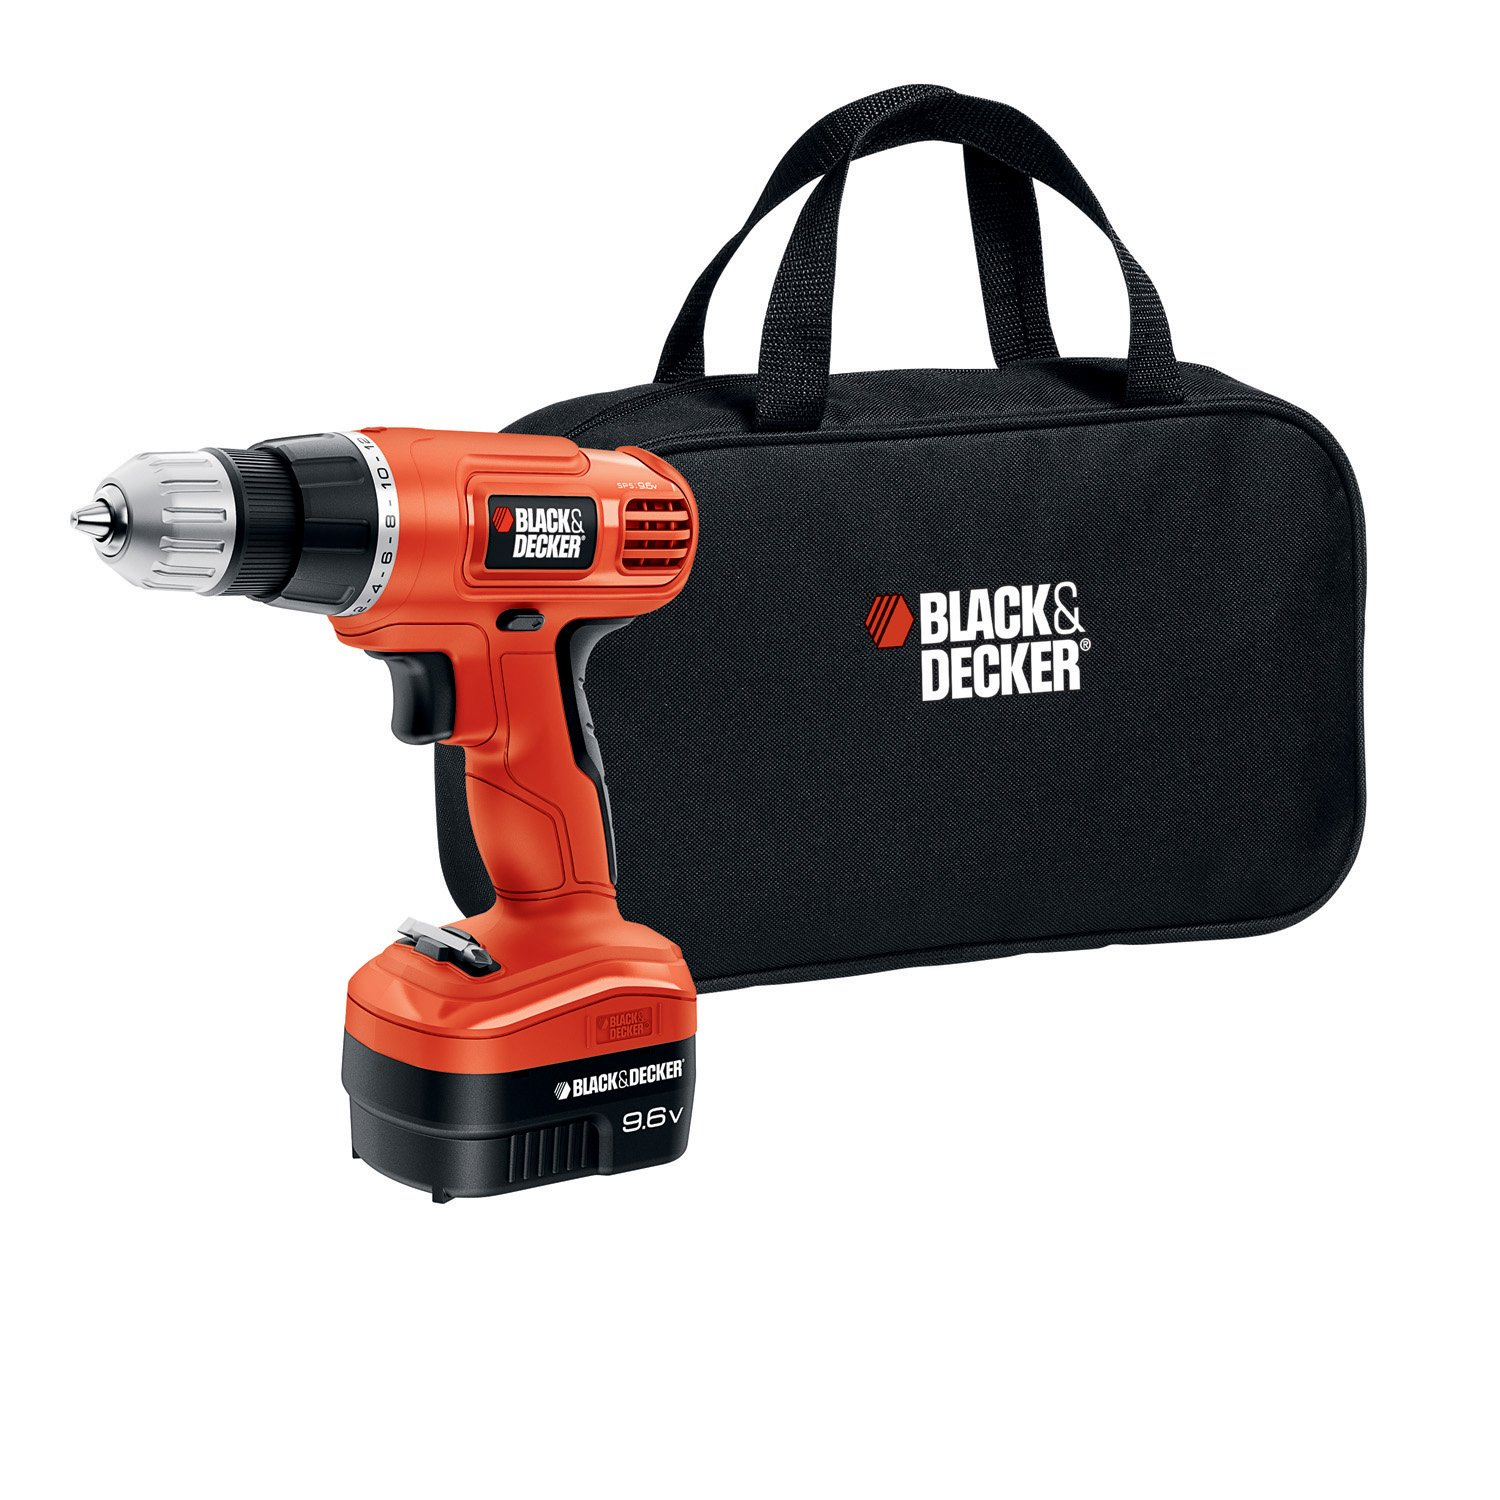 Black & Decker GCO9602SB 9.6-Volt Cordless Drill/Driver with Storage Bag